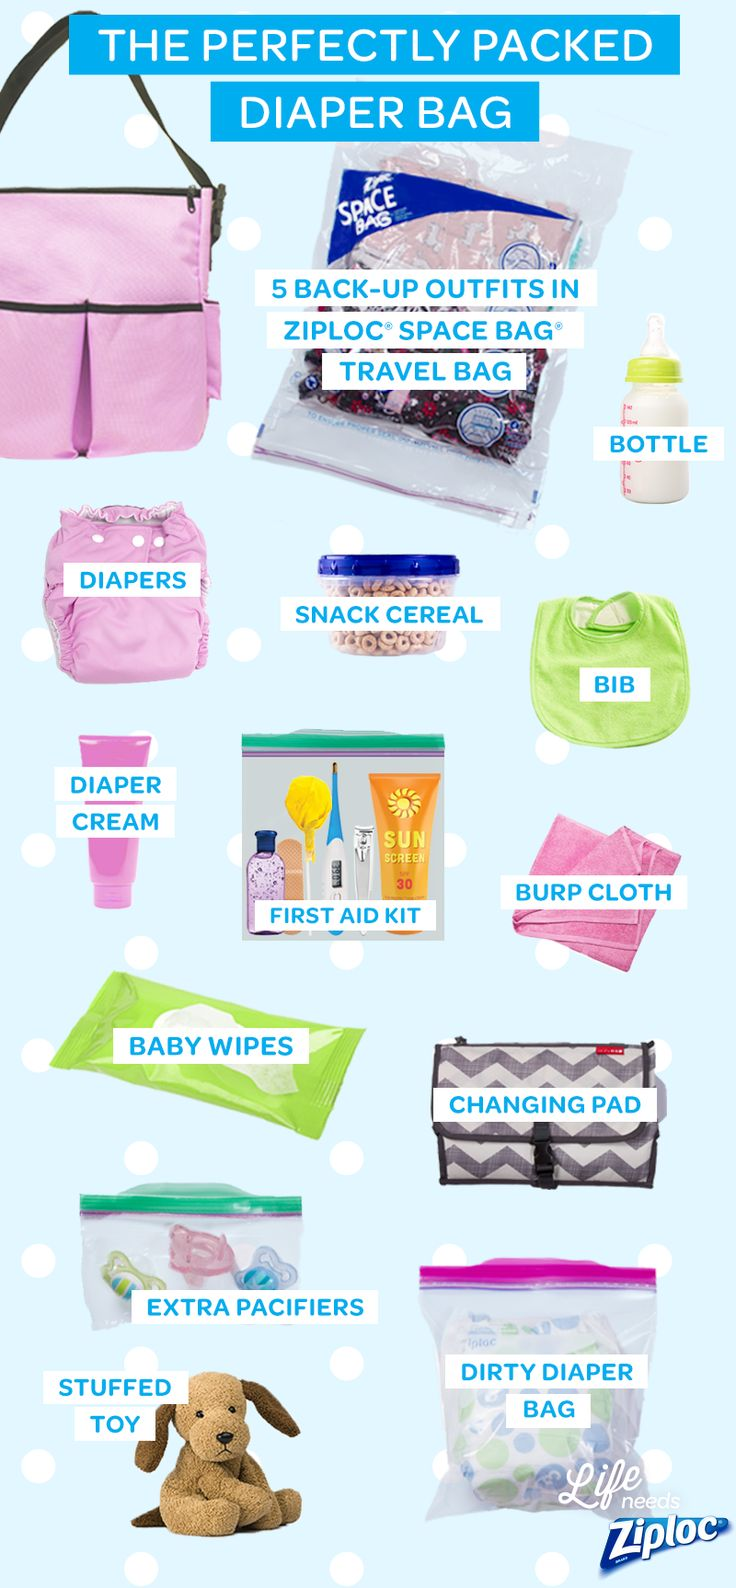 If you're a new parent or have a newborn in your family, use this checklist of diaper bag essentials to make sure you're ready for any emergency your baby might have. Besides the basics like diapers, pacifiers, a bottle, snack cereal, a bib, and a changing pad, we recommend storing several extra outfits in a Ziploc® Space Bag® Travel Bag so you'll be prepared for anything.